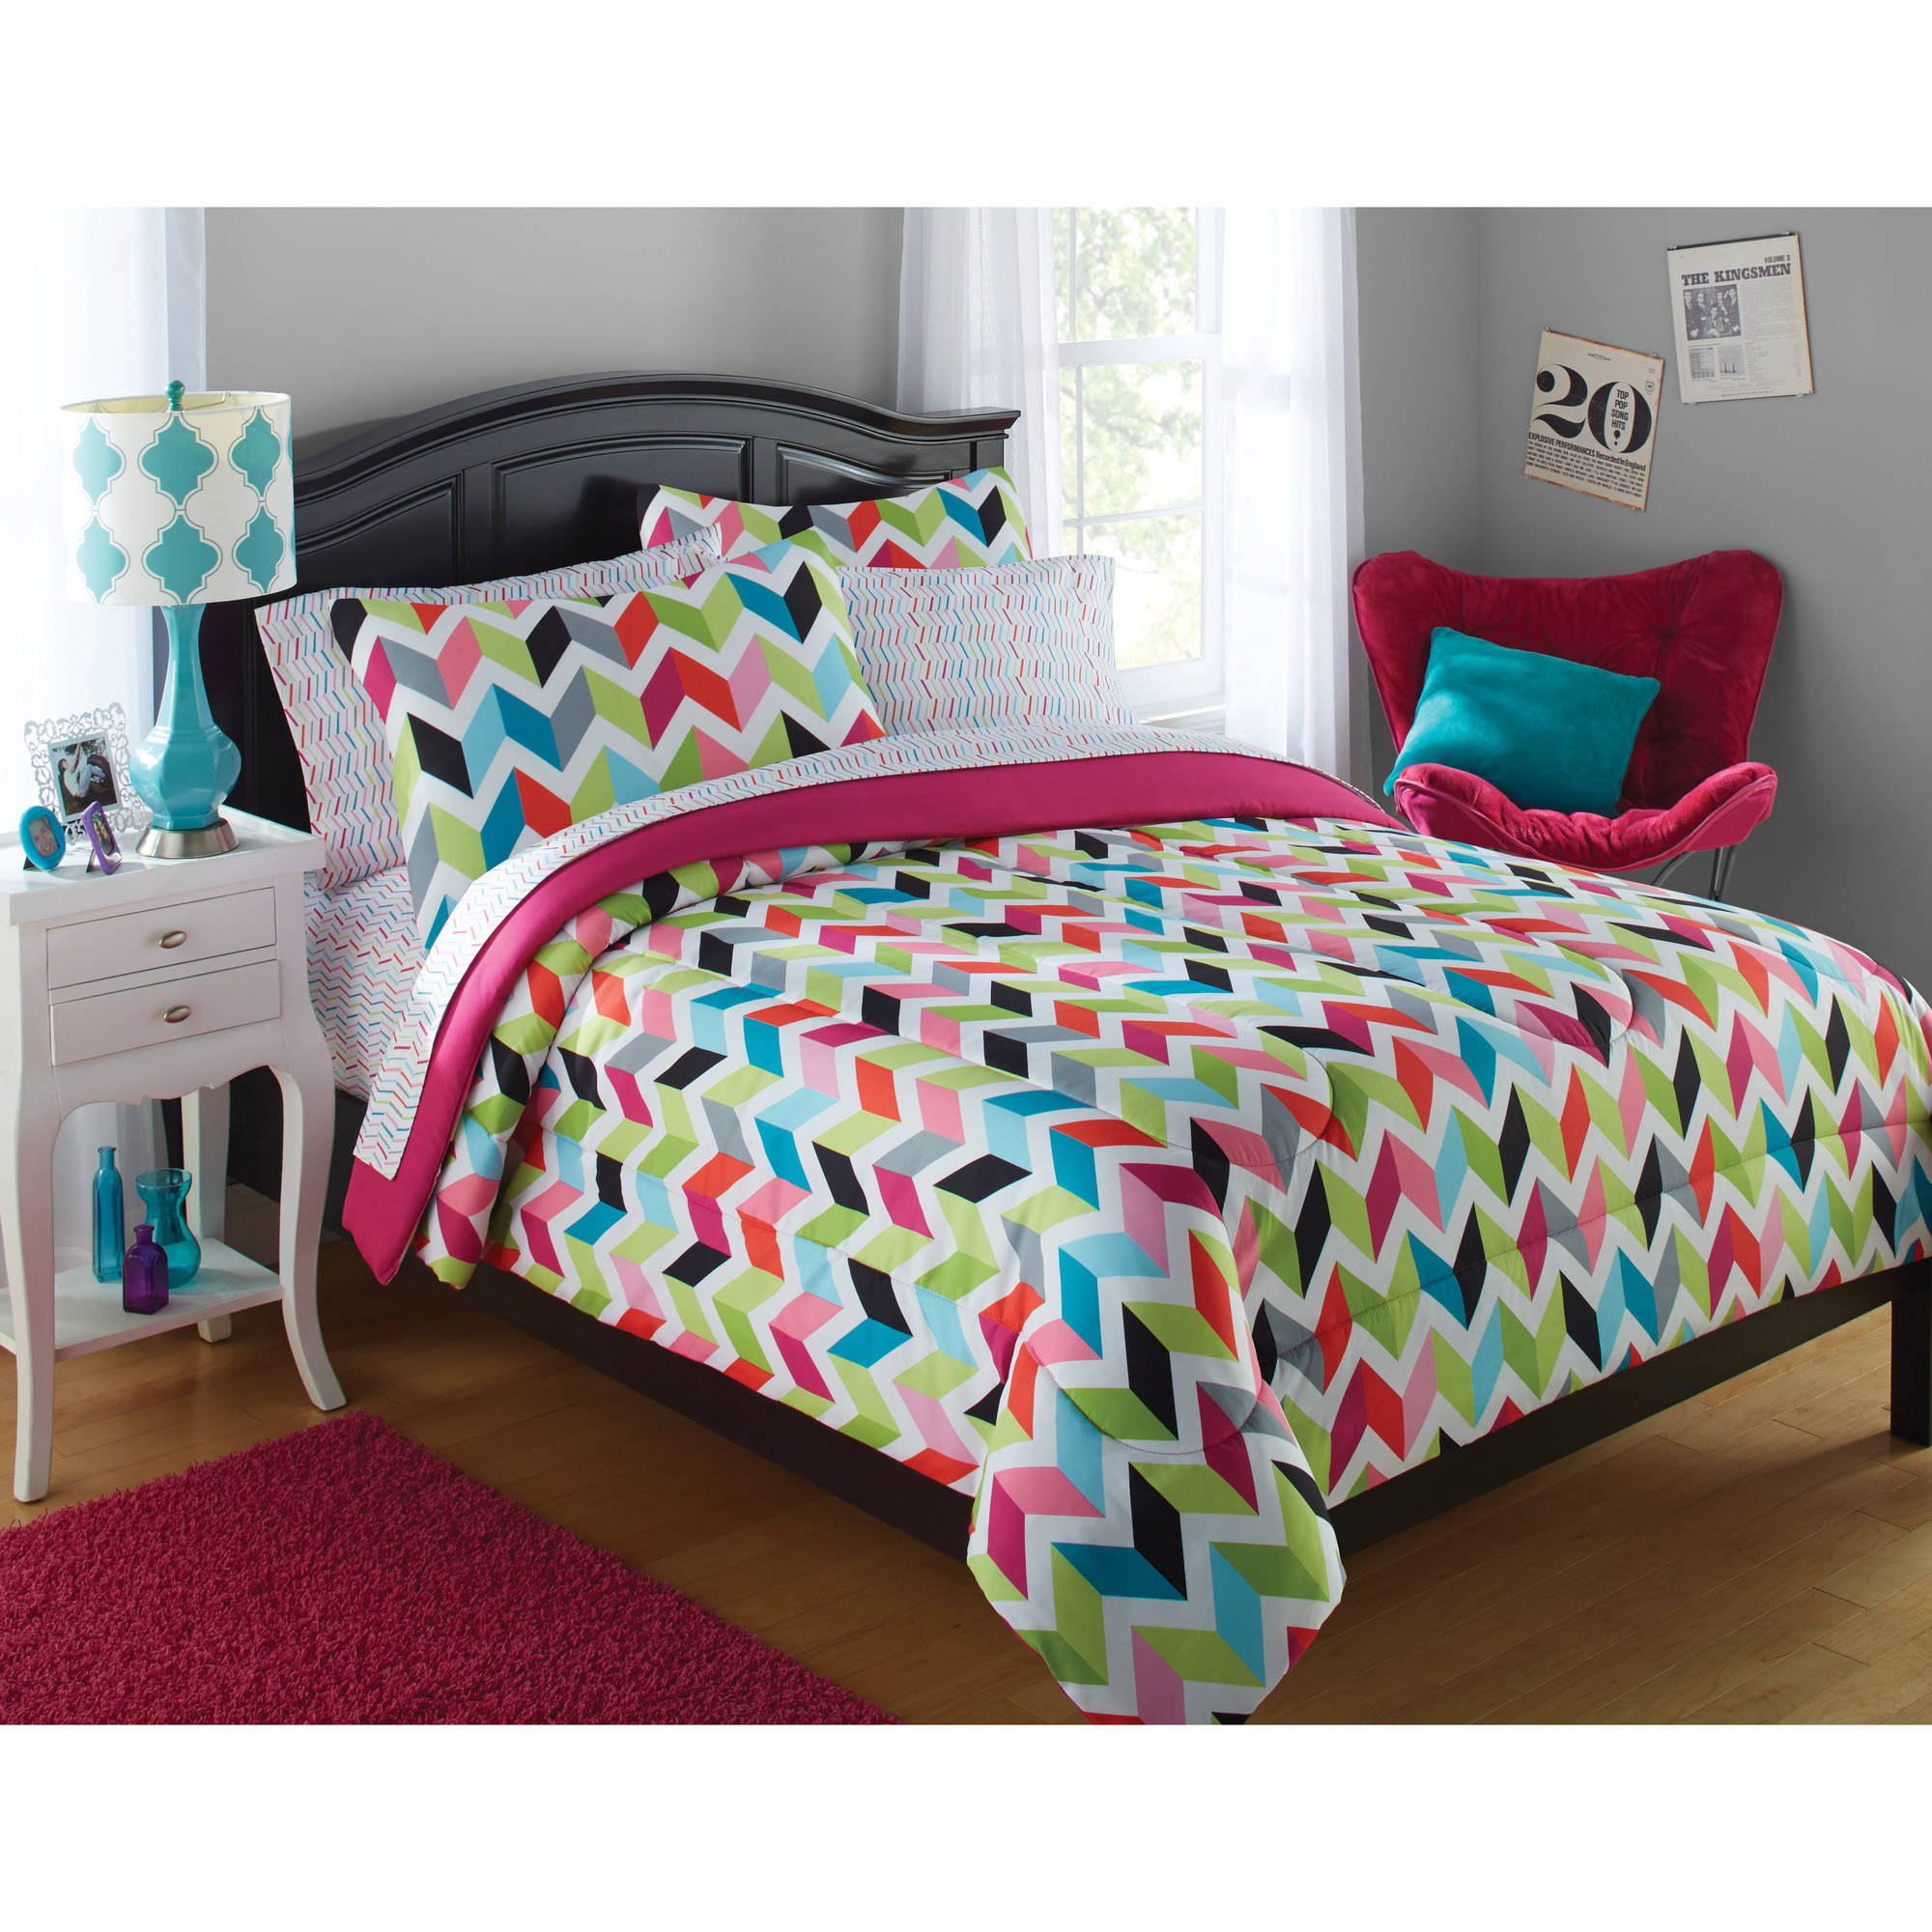 Kmart Bed Sets | Twin Comforter Sets | Kmart Baby Bed Sets